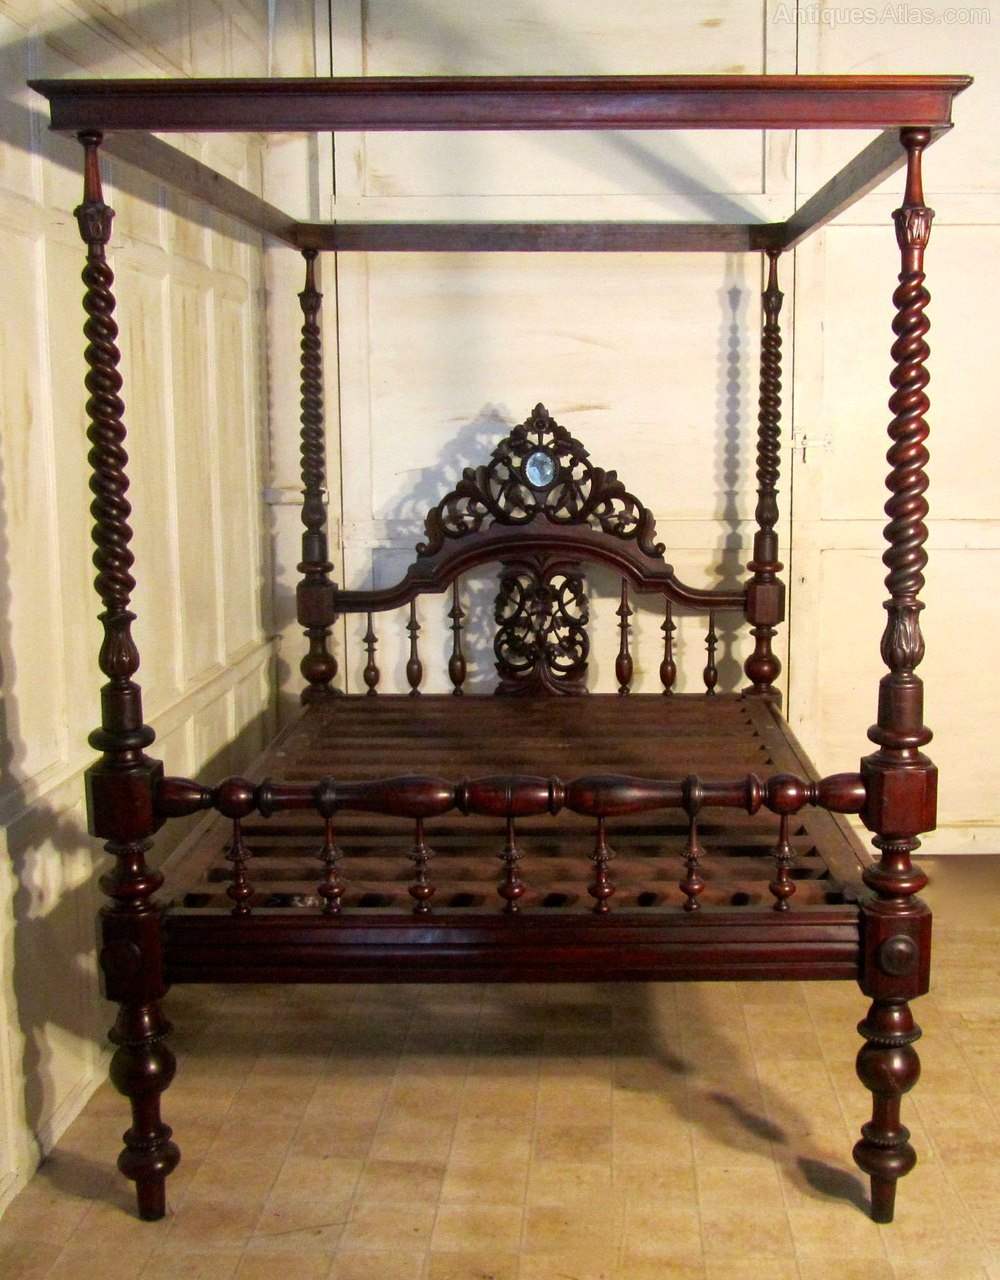 ... Antique Four Poster Beds ... & Colonial Style Carved Mahogany 4 Poster Double Bed - Antiques Atlas